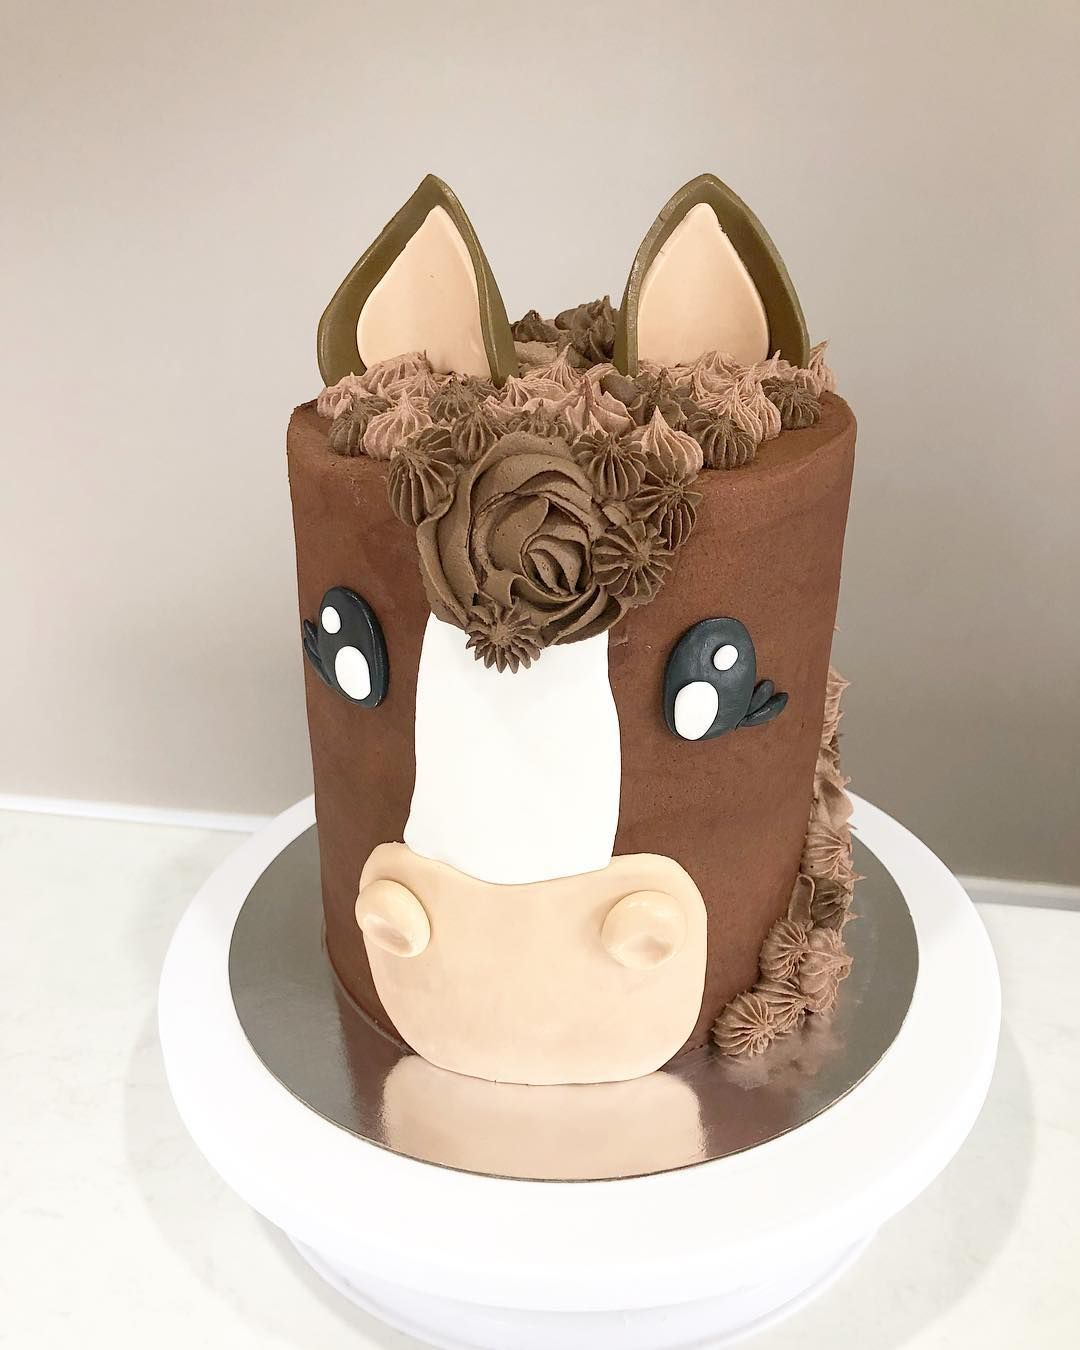 Gateau Tete De Cheval A Little Brown Pony For A Horse Loving Little Lady Chocolatecake